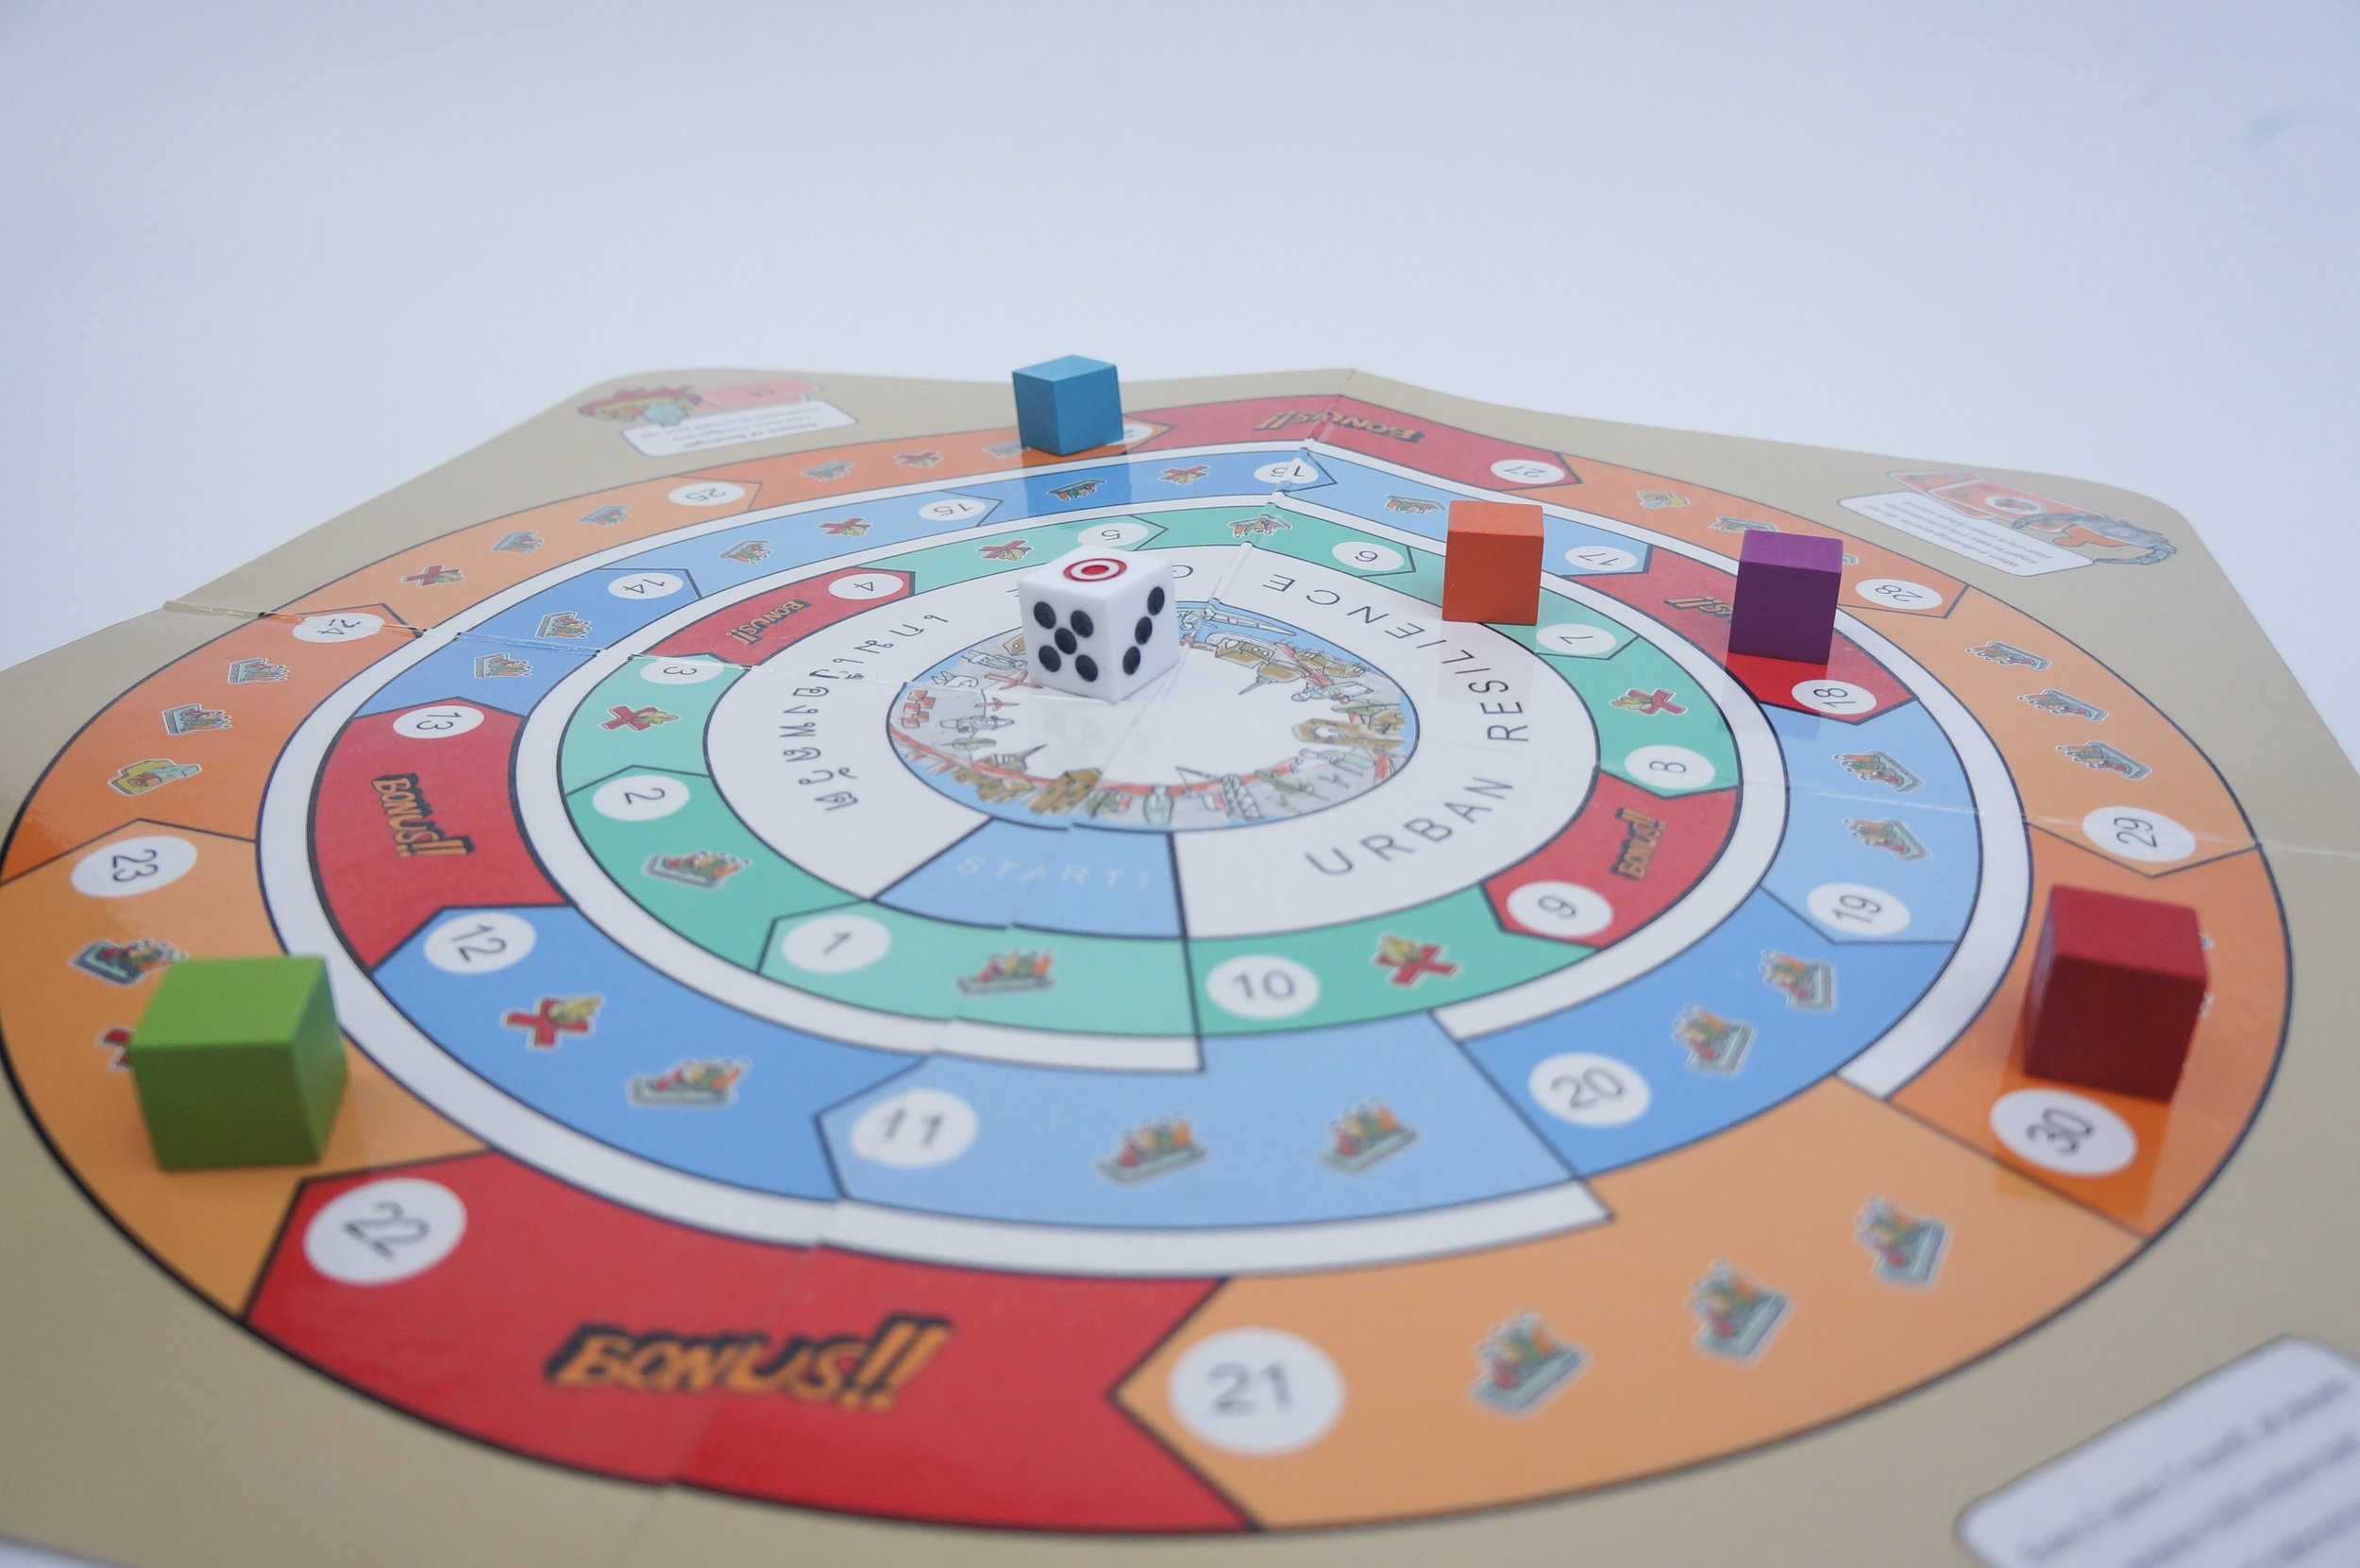 The Urban Resilience Board Game: Turning academic research into a board game